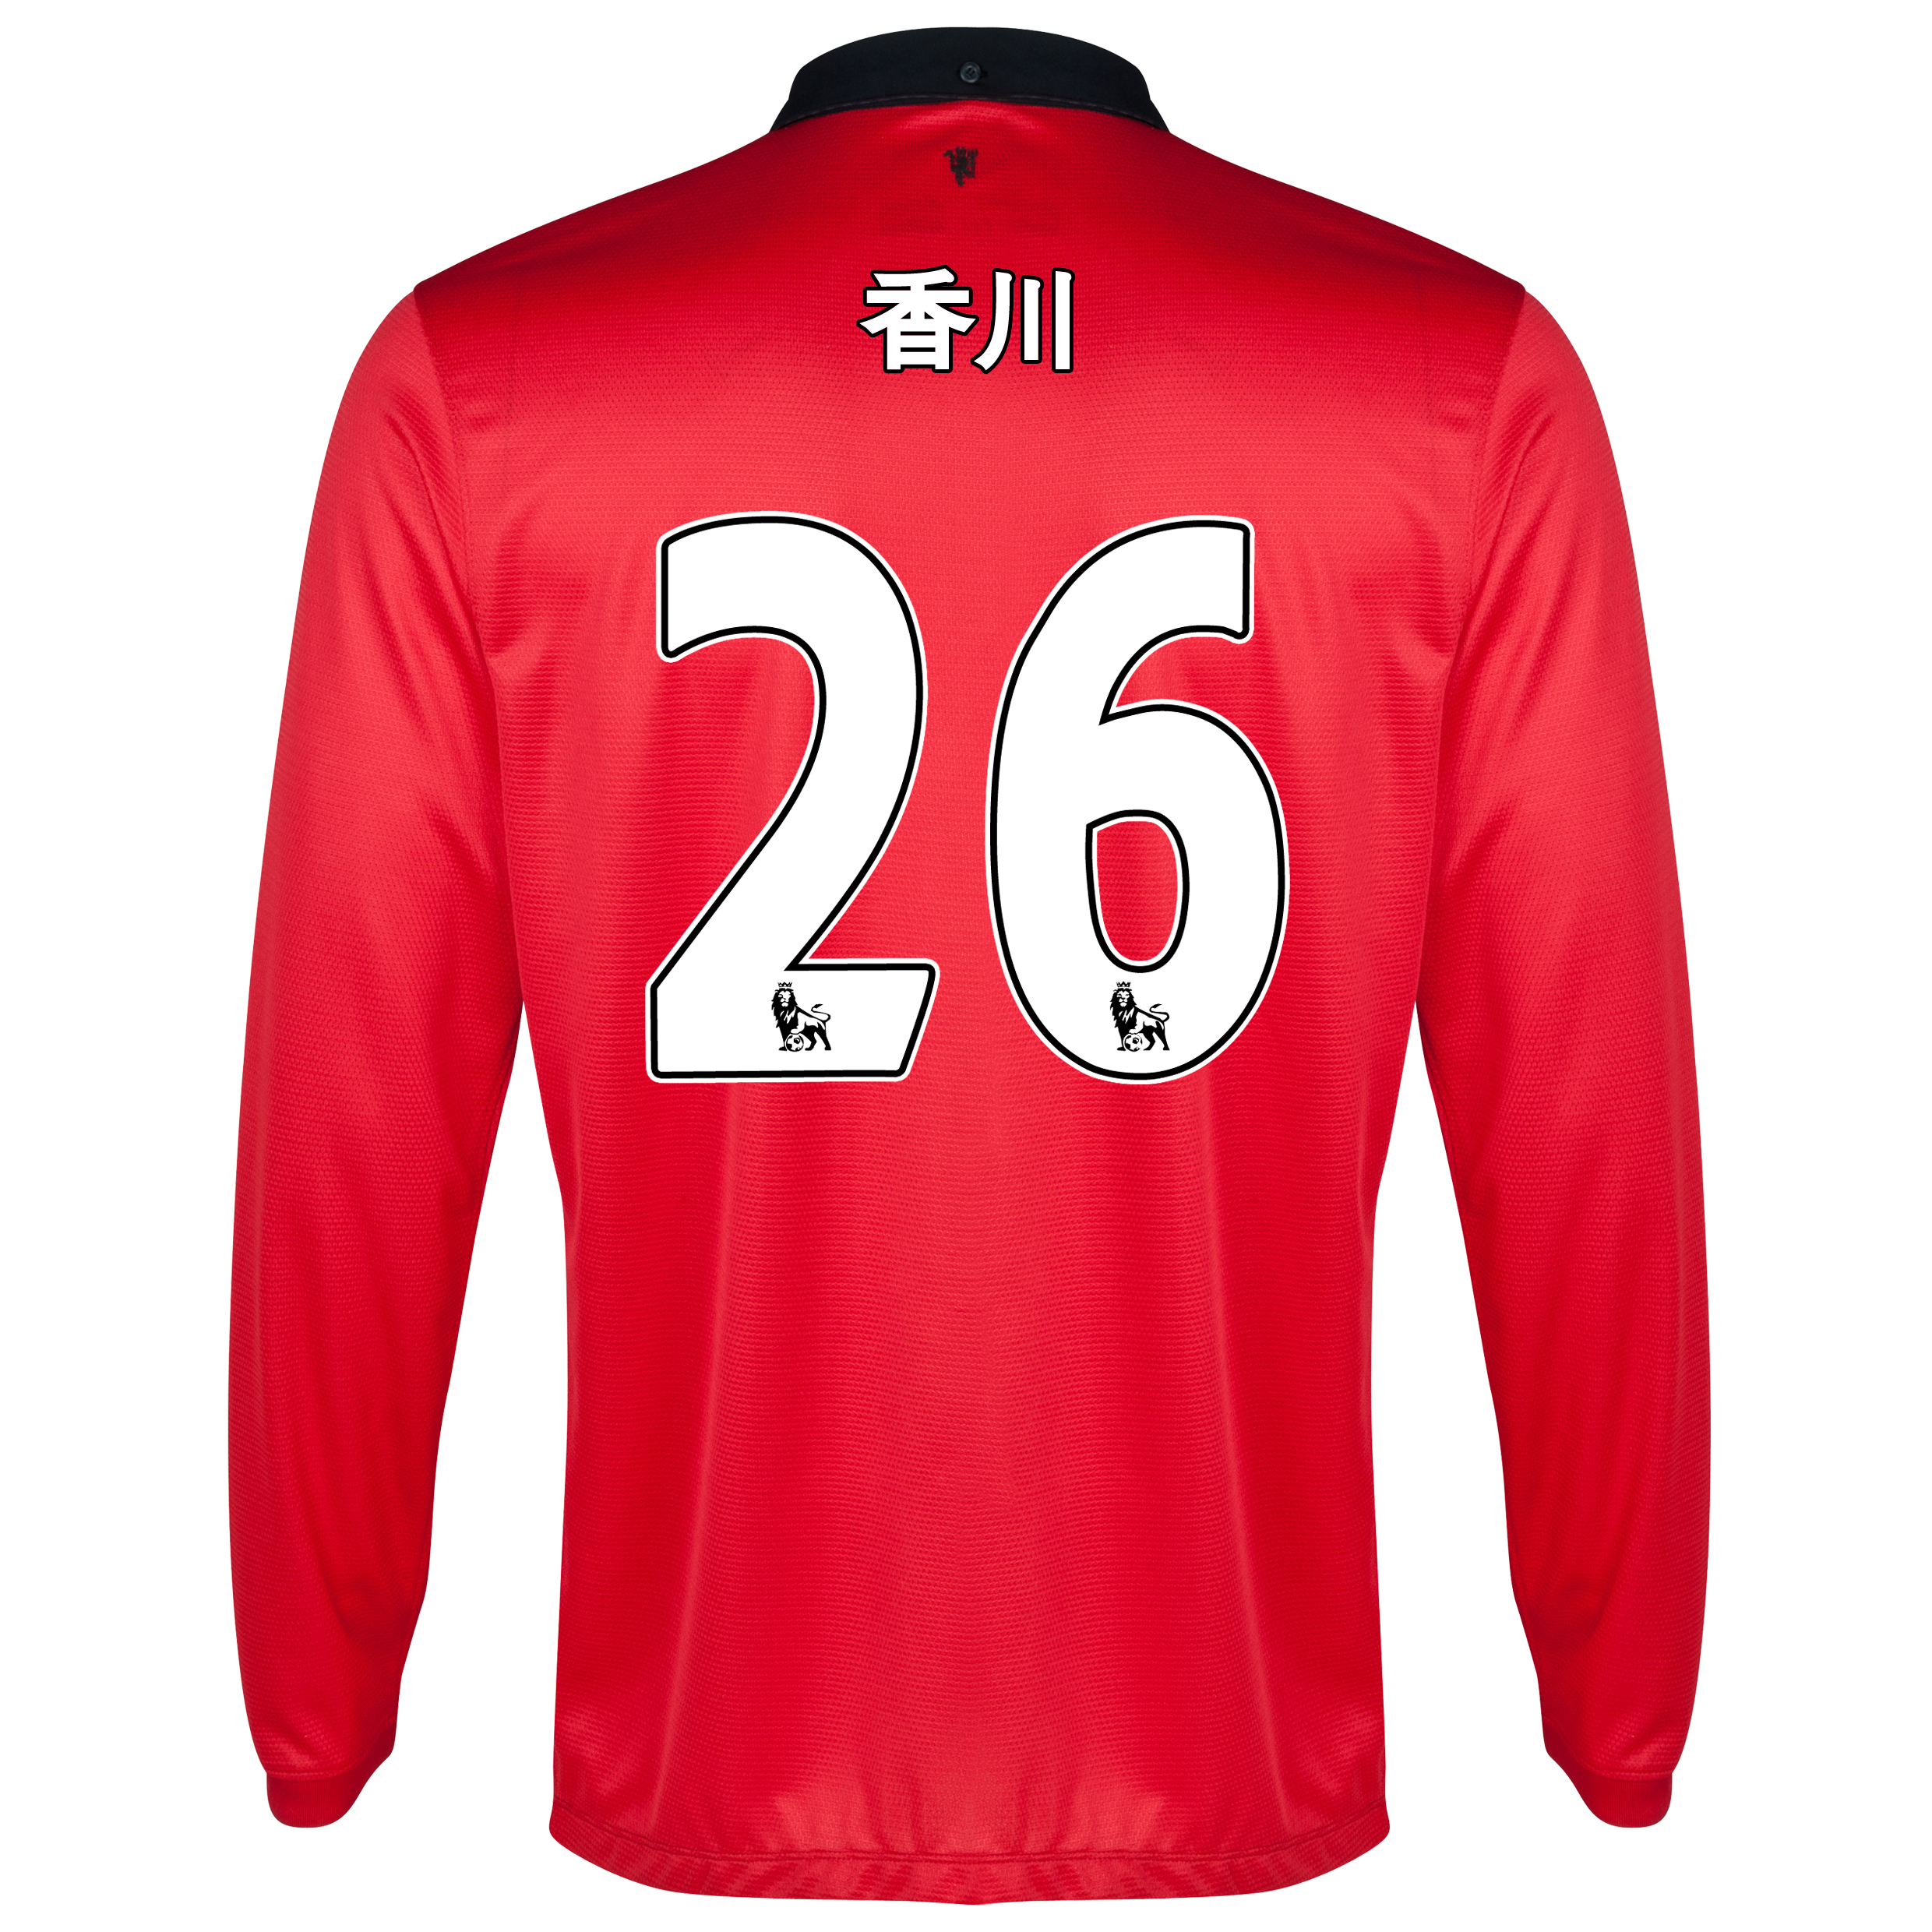 Manchester United Home Shirt 2013/14 - Long Sleeved - Kids with Kagawa 26 printing (Japanese)